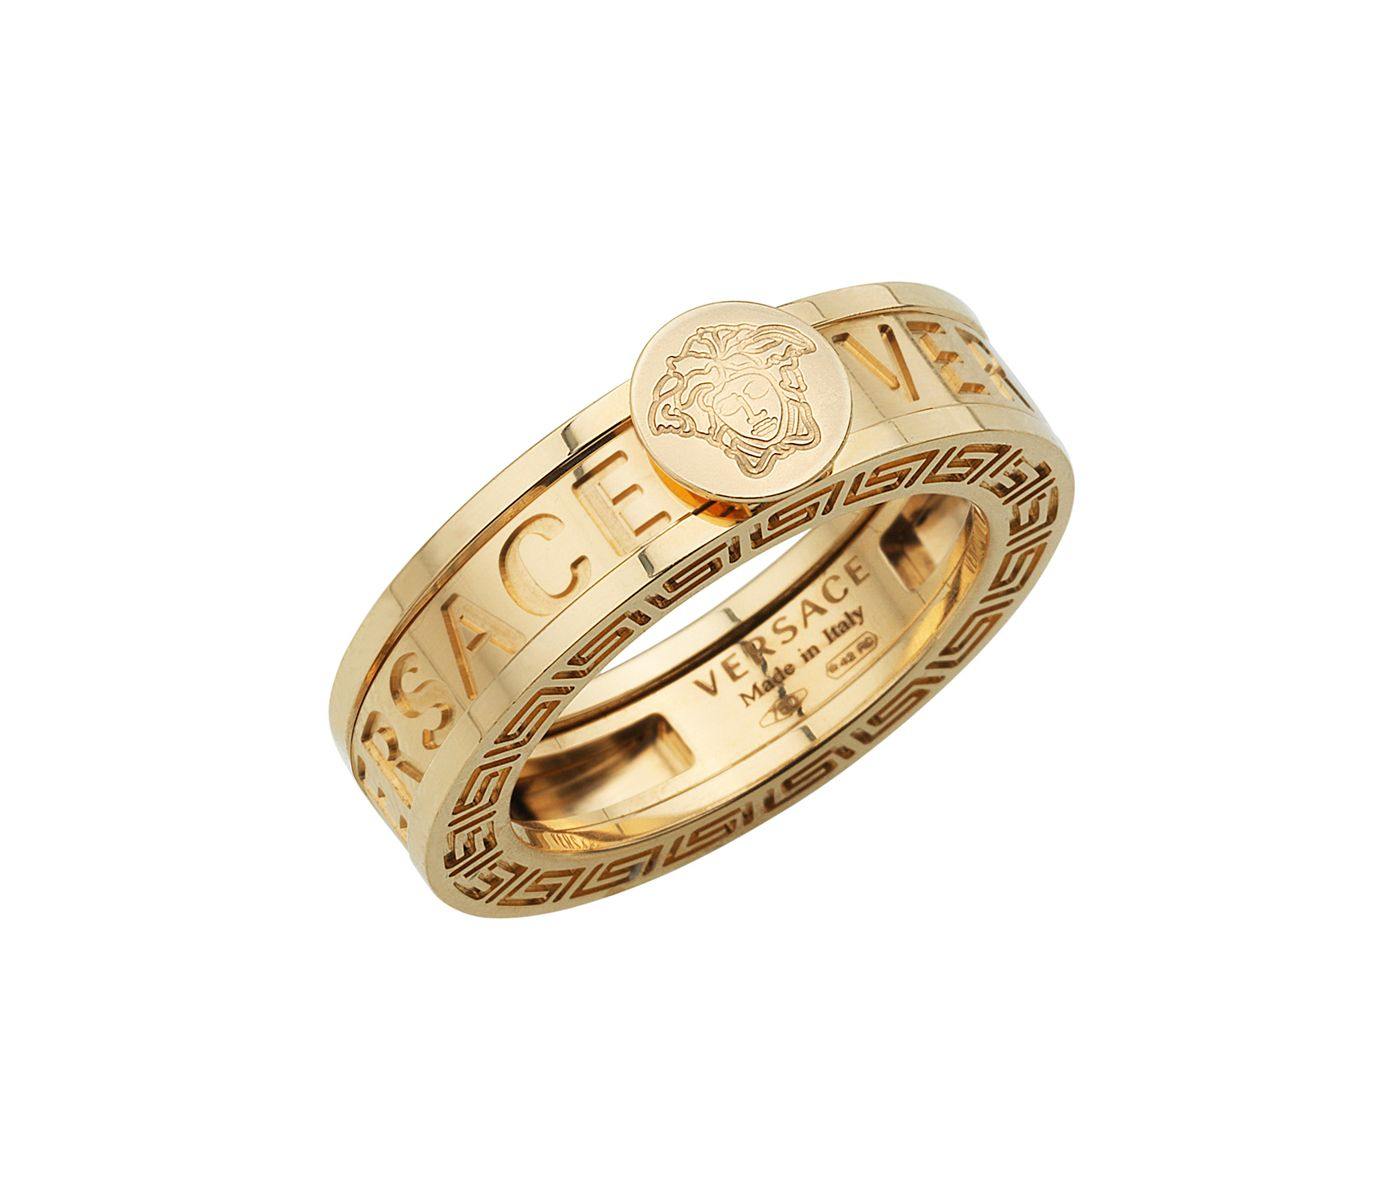 Versace Jewelry for Men Versace Yellow Gold Medusa Head Ring